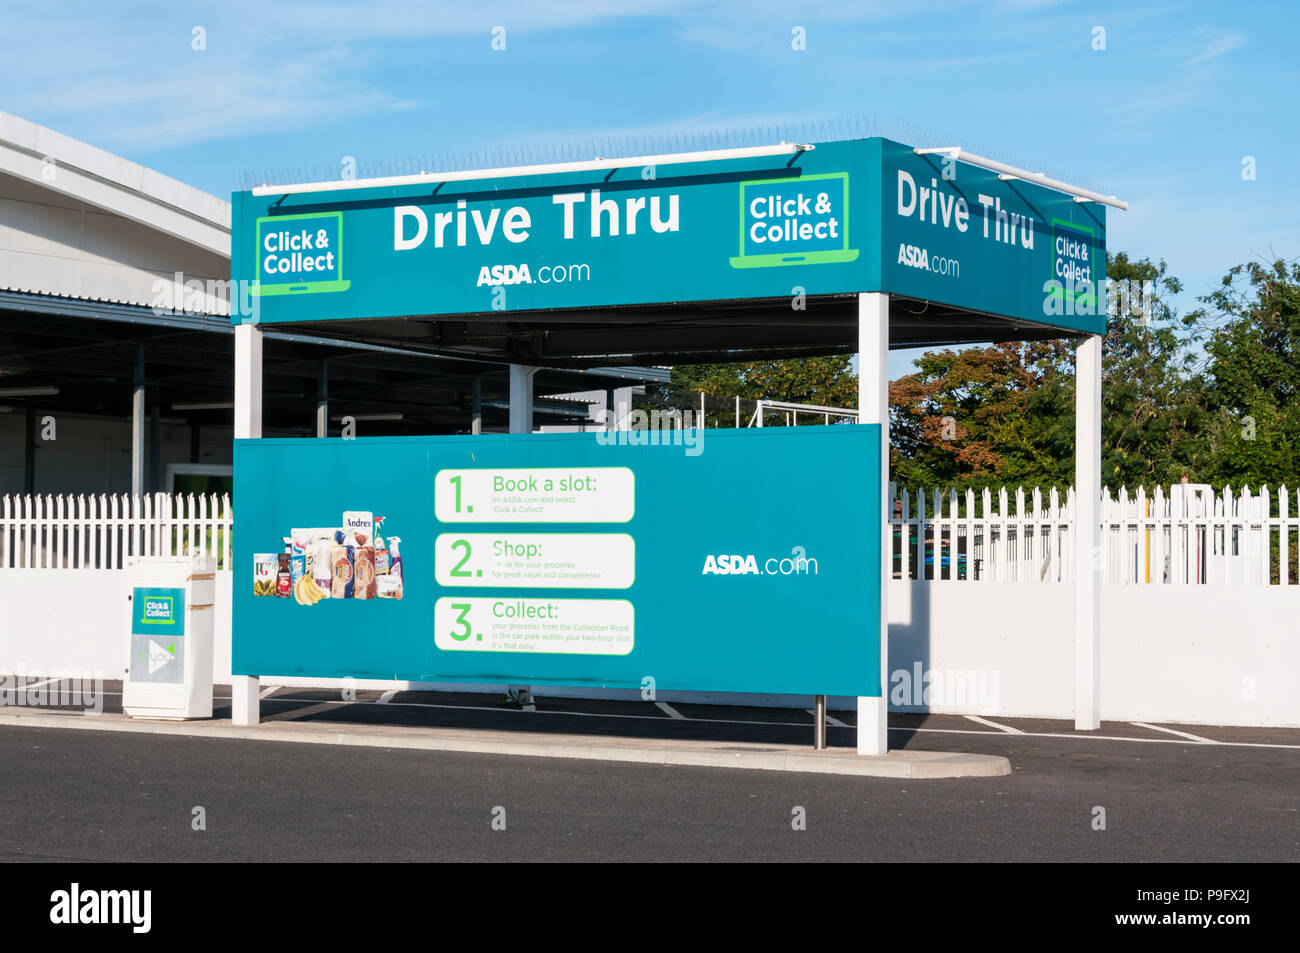 asda car park stock photos asda car park stock images alamy. Black Bedroom Furniture Sets. Home Design Ideas